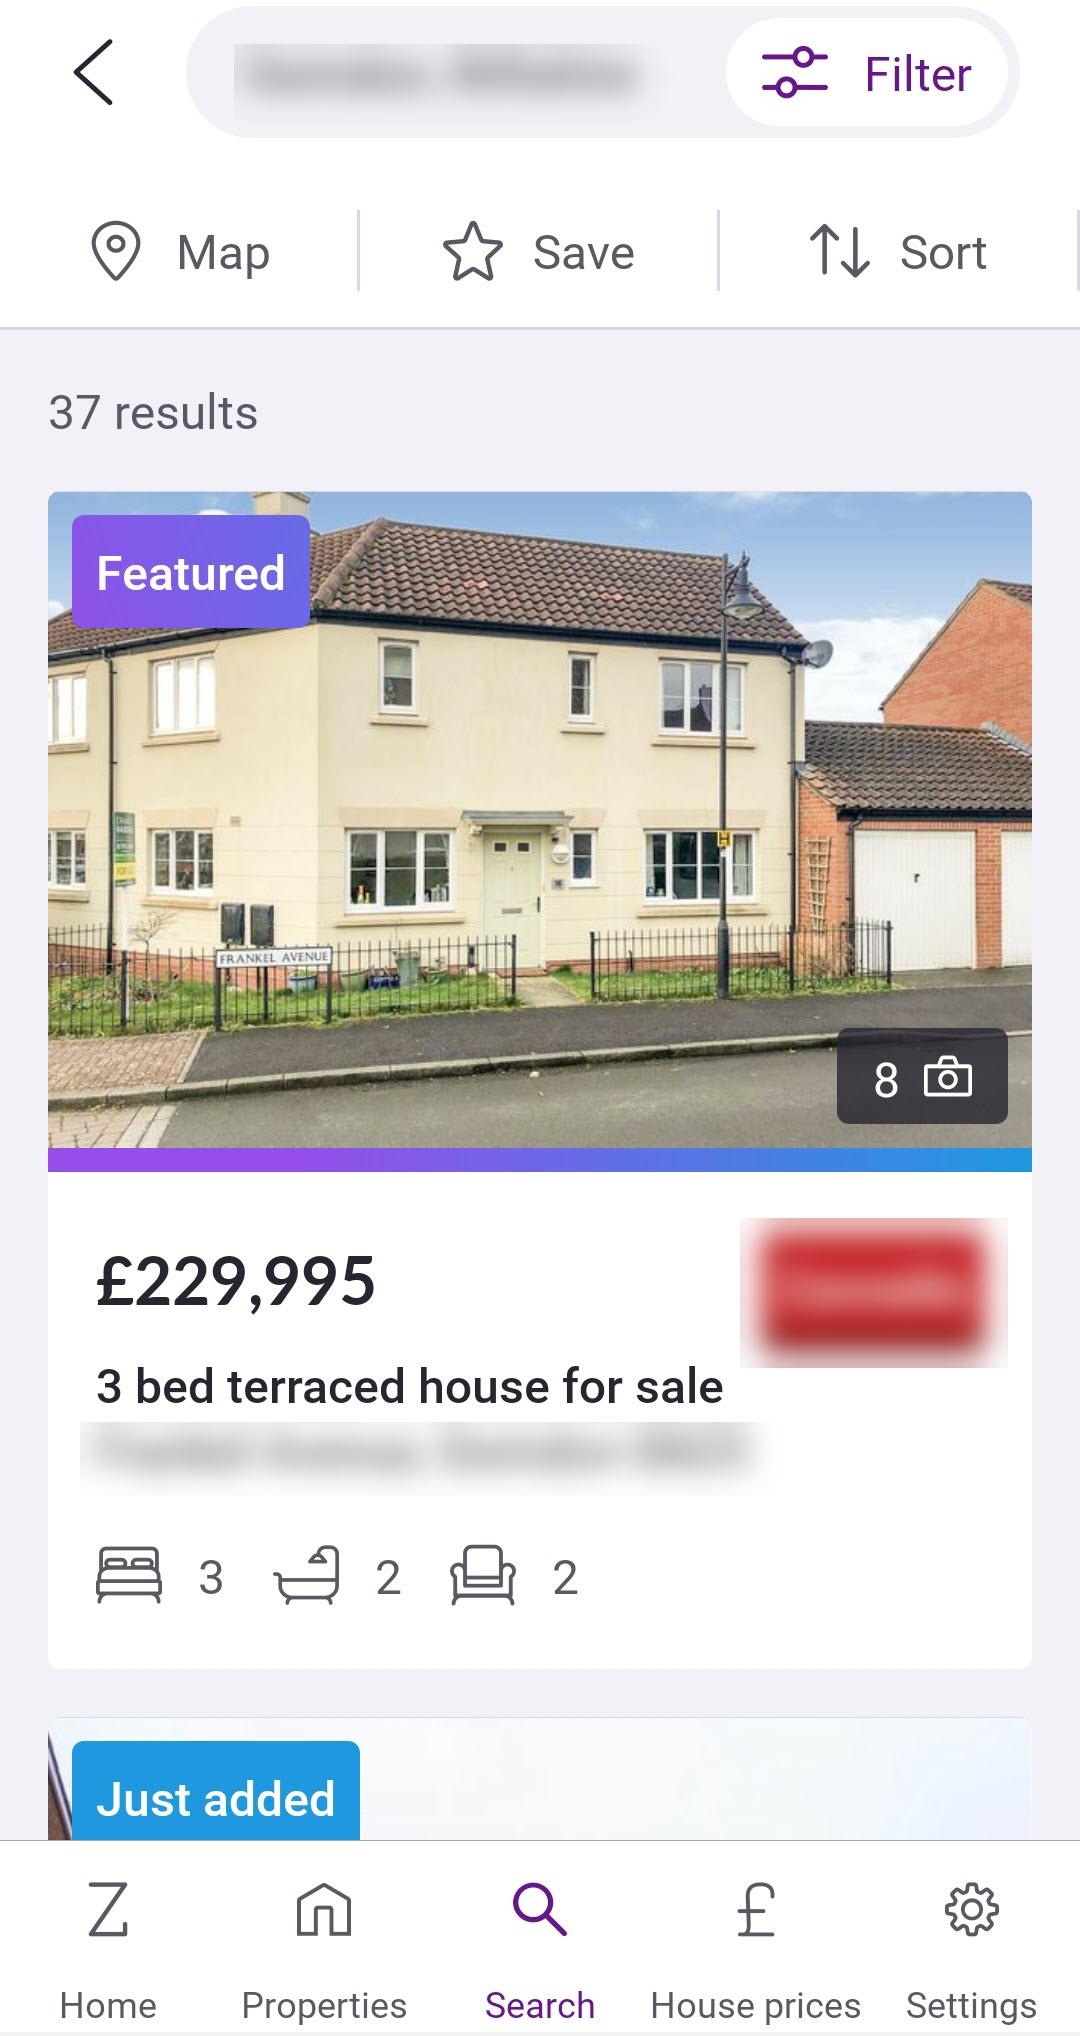 FP_On_Zoopla_App_Android.jpg